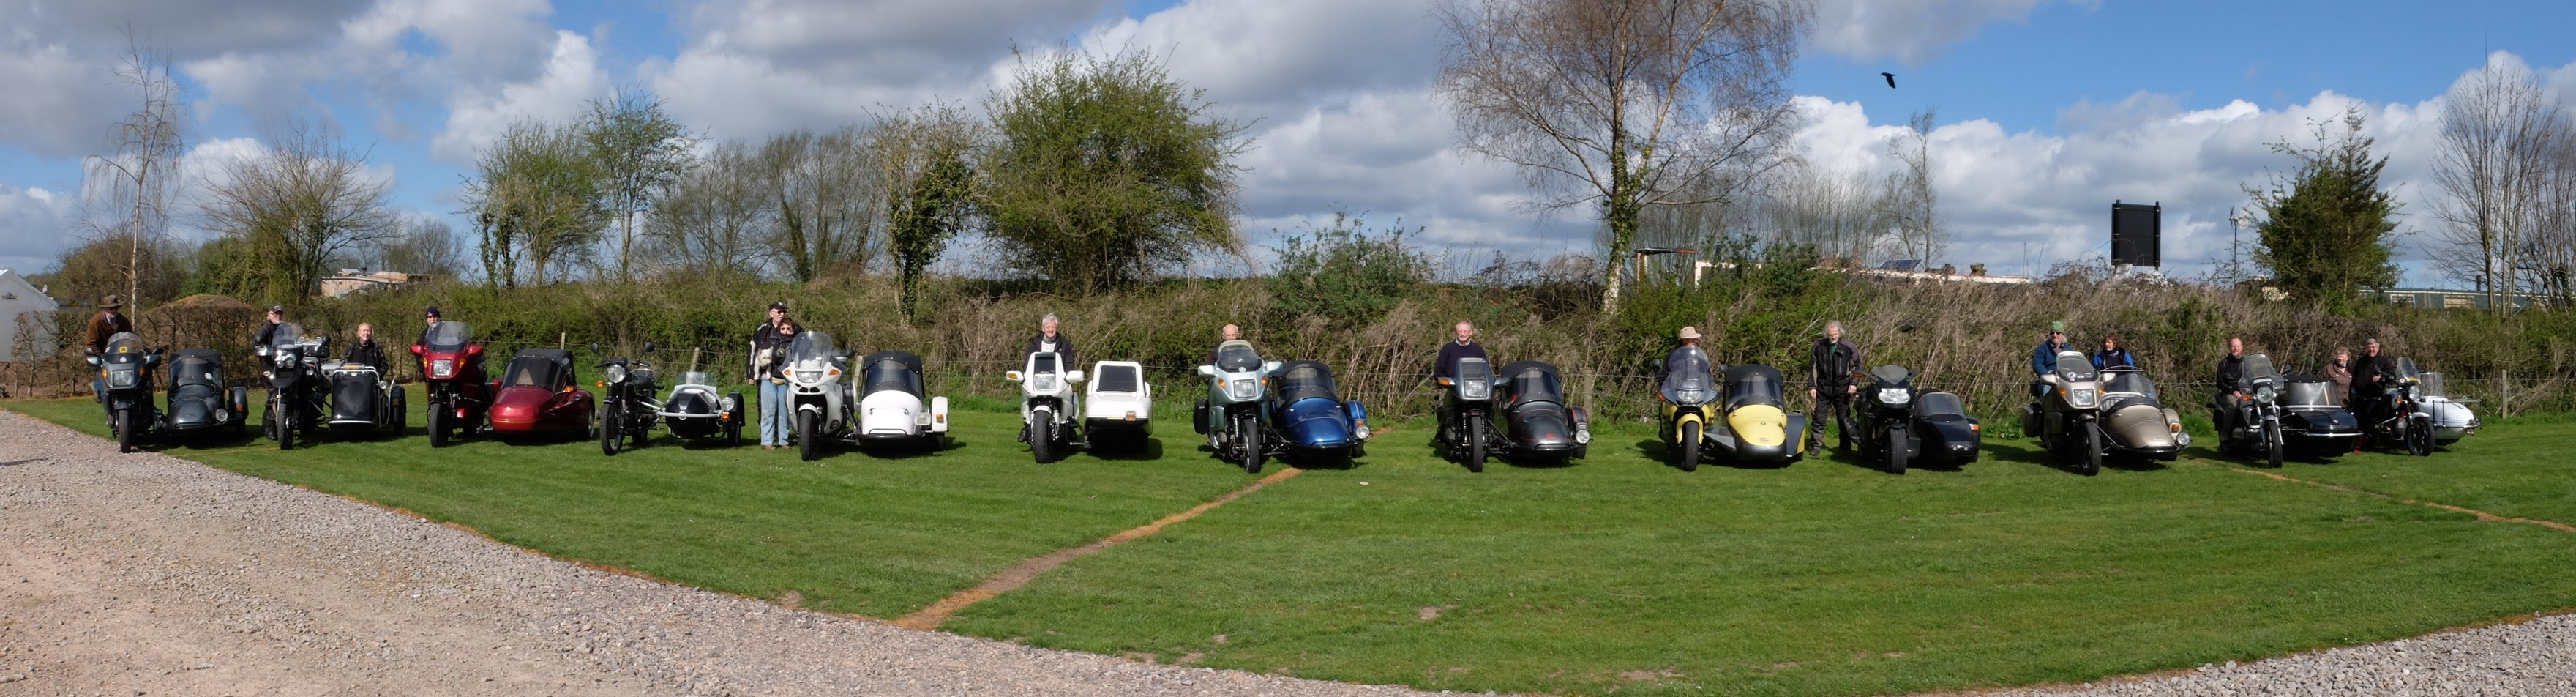 BMW outfits at HSOC's Slimbridge rally April 2015